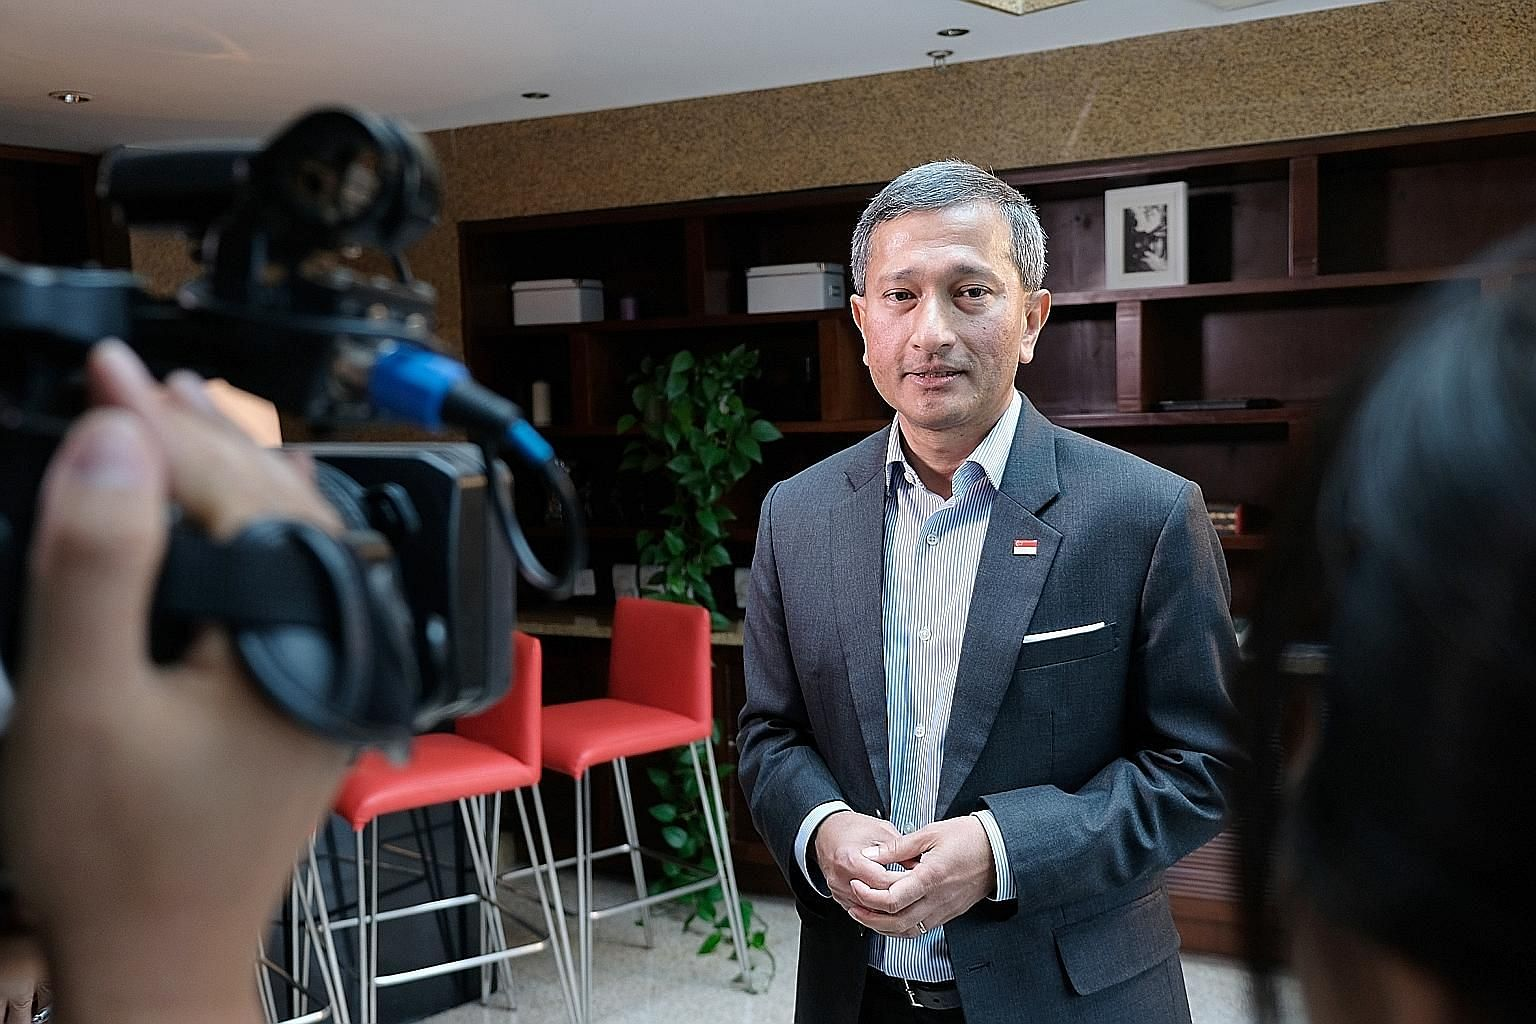 """Foreign Minister Vivian Balakrishnan says some have called the upcoming summit an """"incredible branding opportunity"""" for Singapore."""